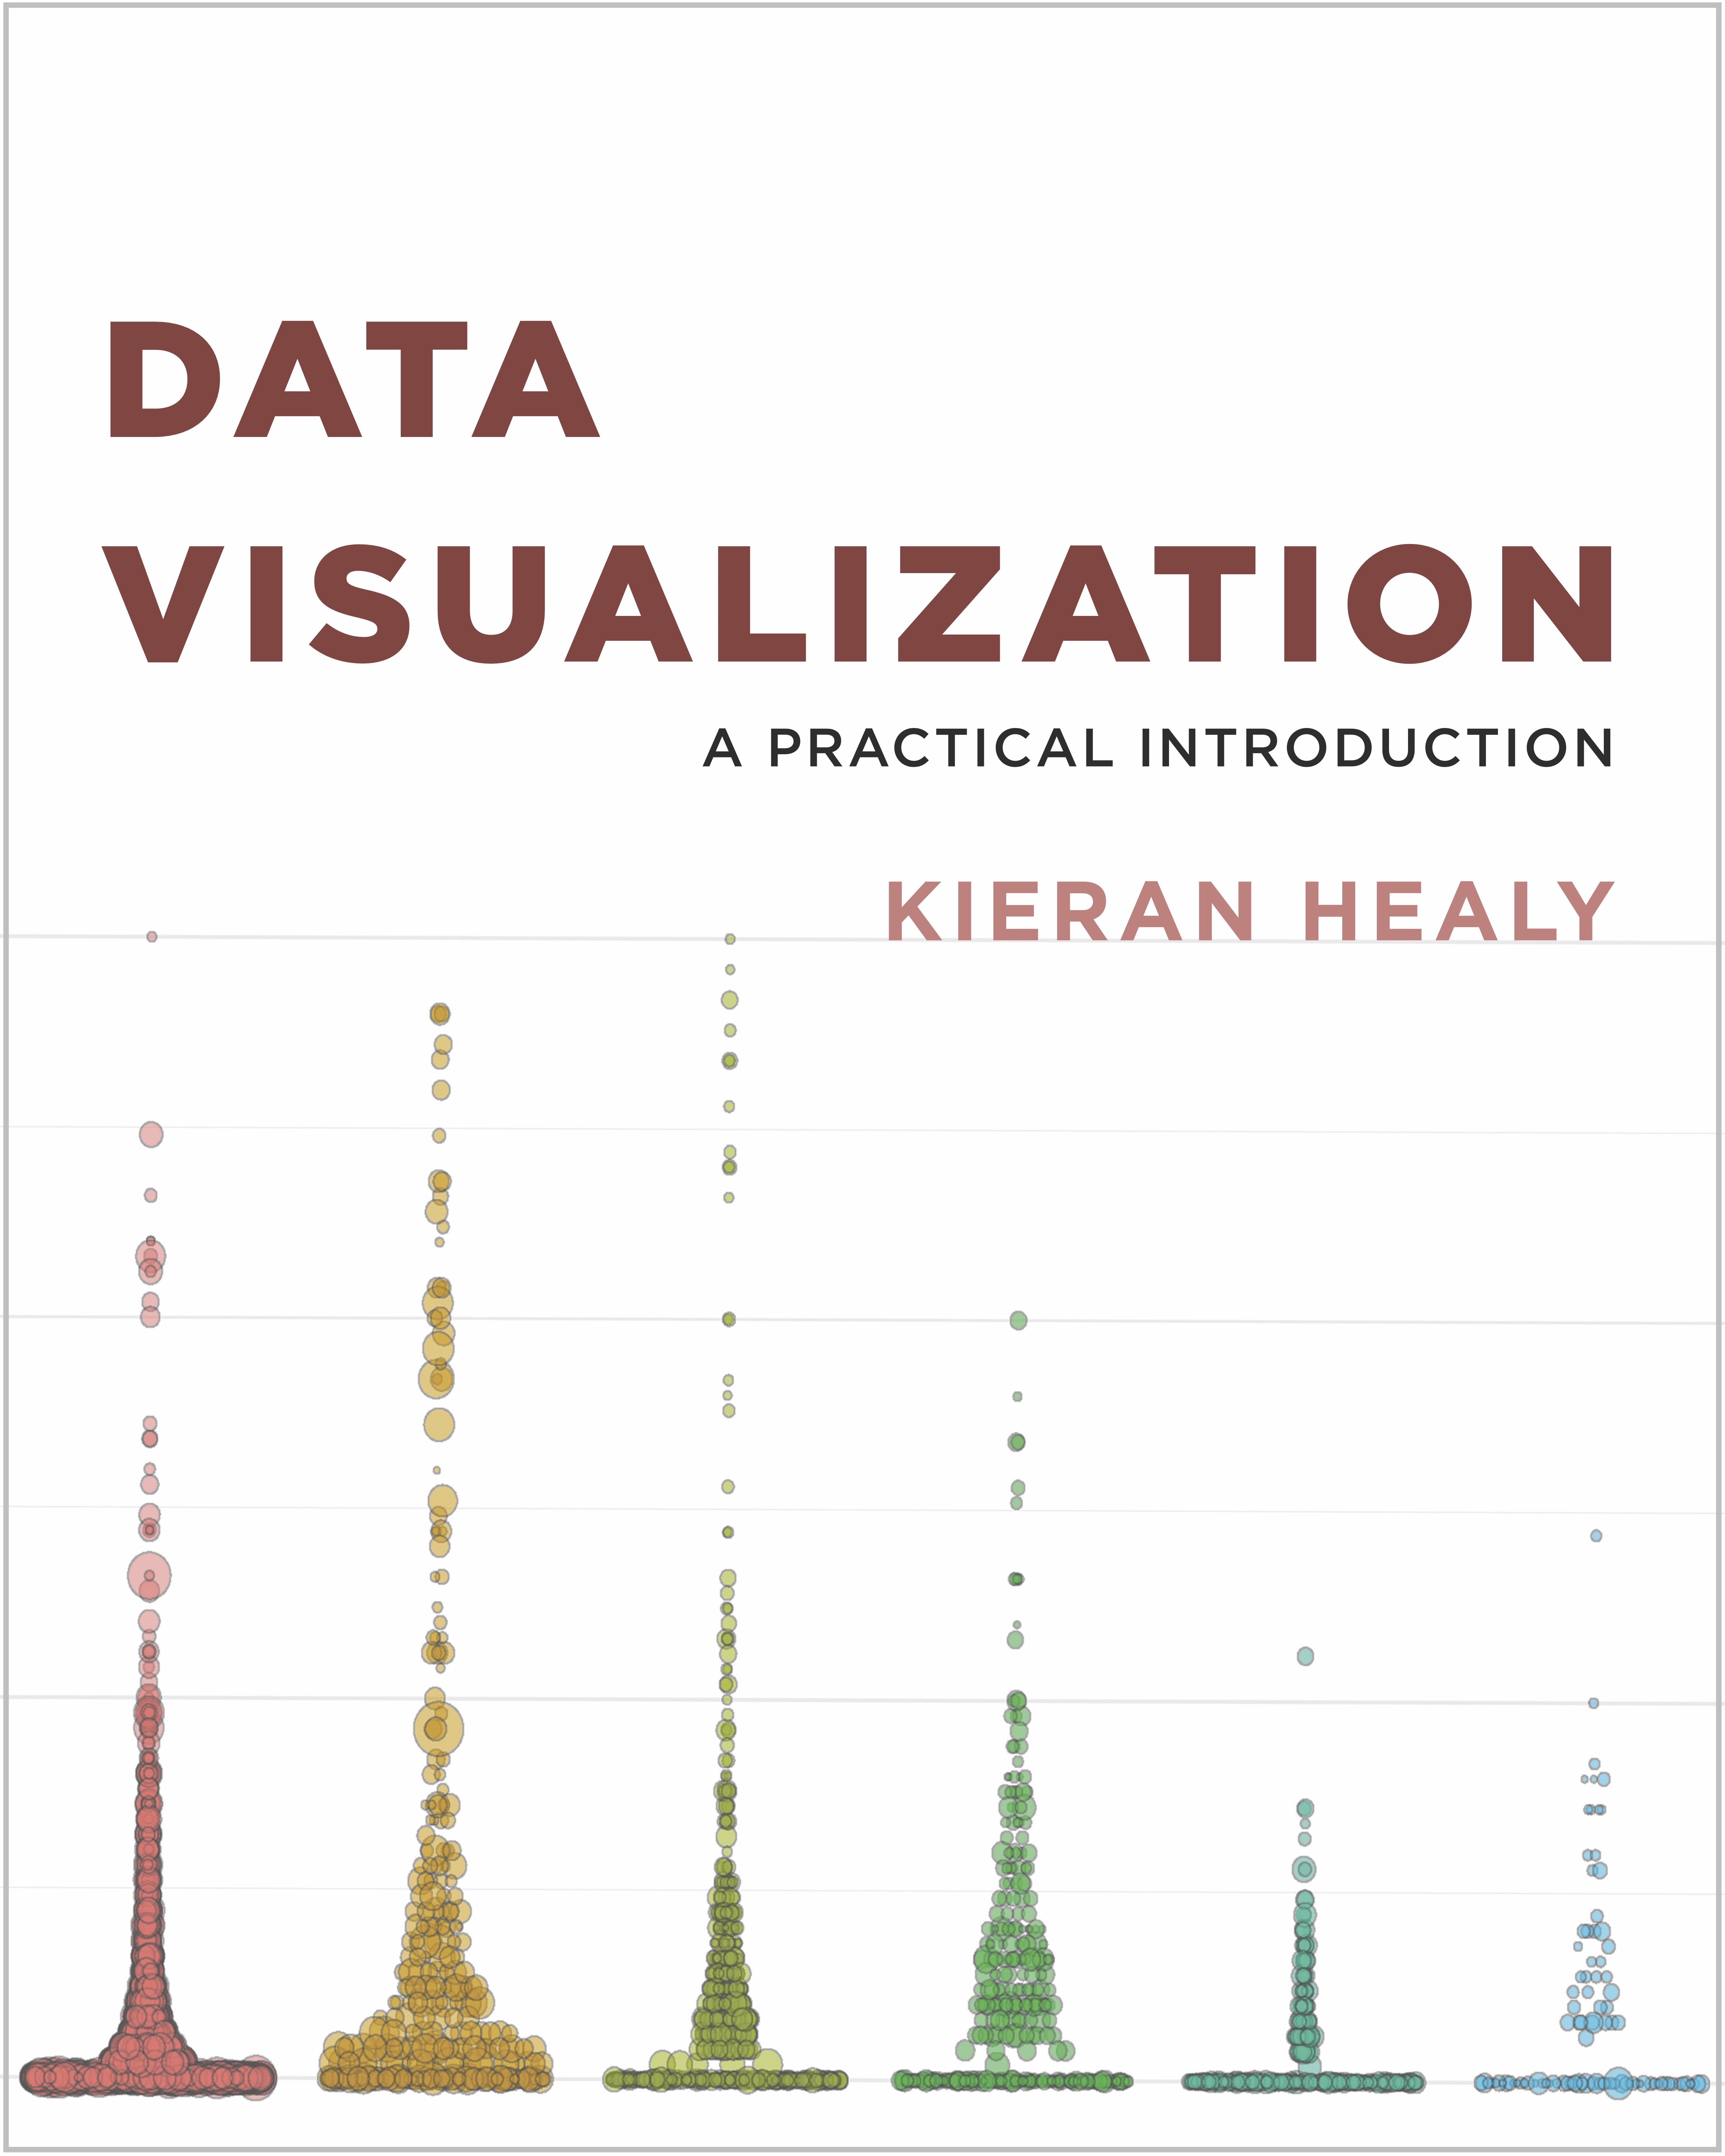 The Data Visualization book cover